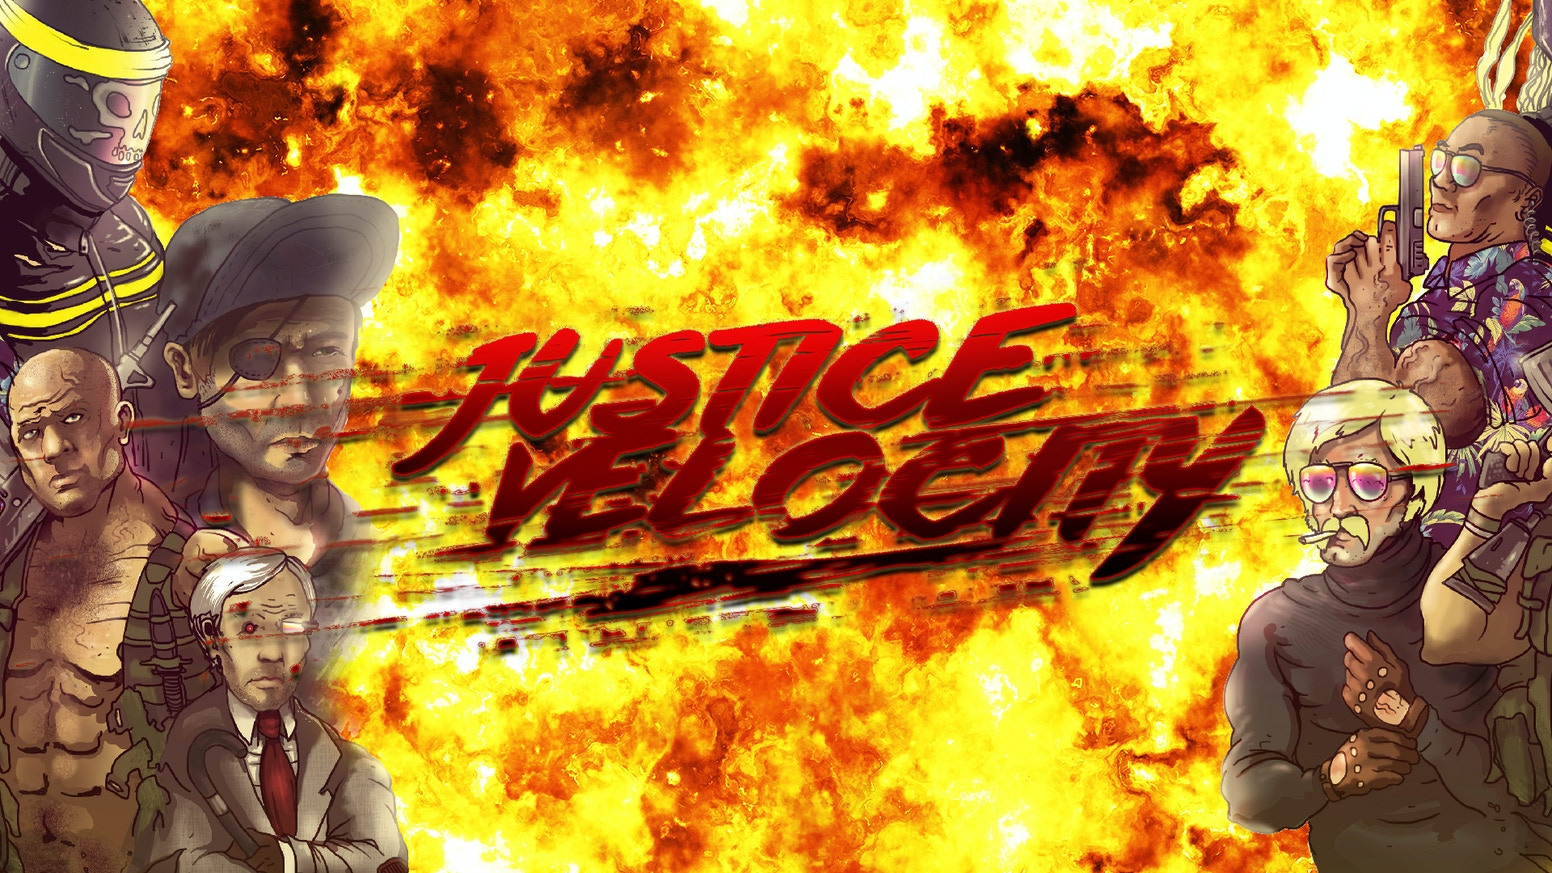 e4806a4d9 Justice Velocity: An Action Movie Inspired Tabletop RPG by Polyhedra ...